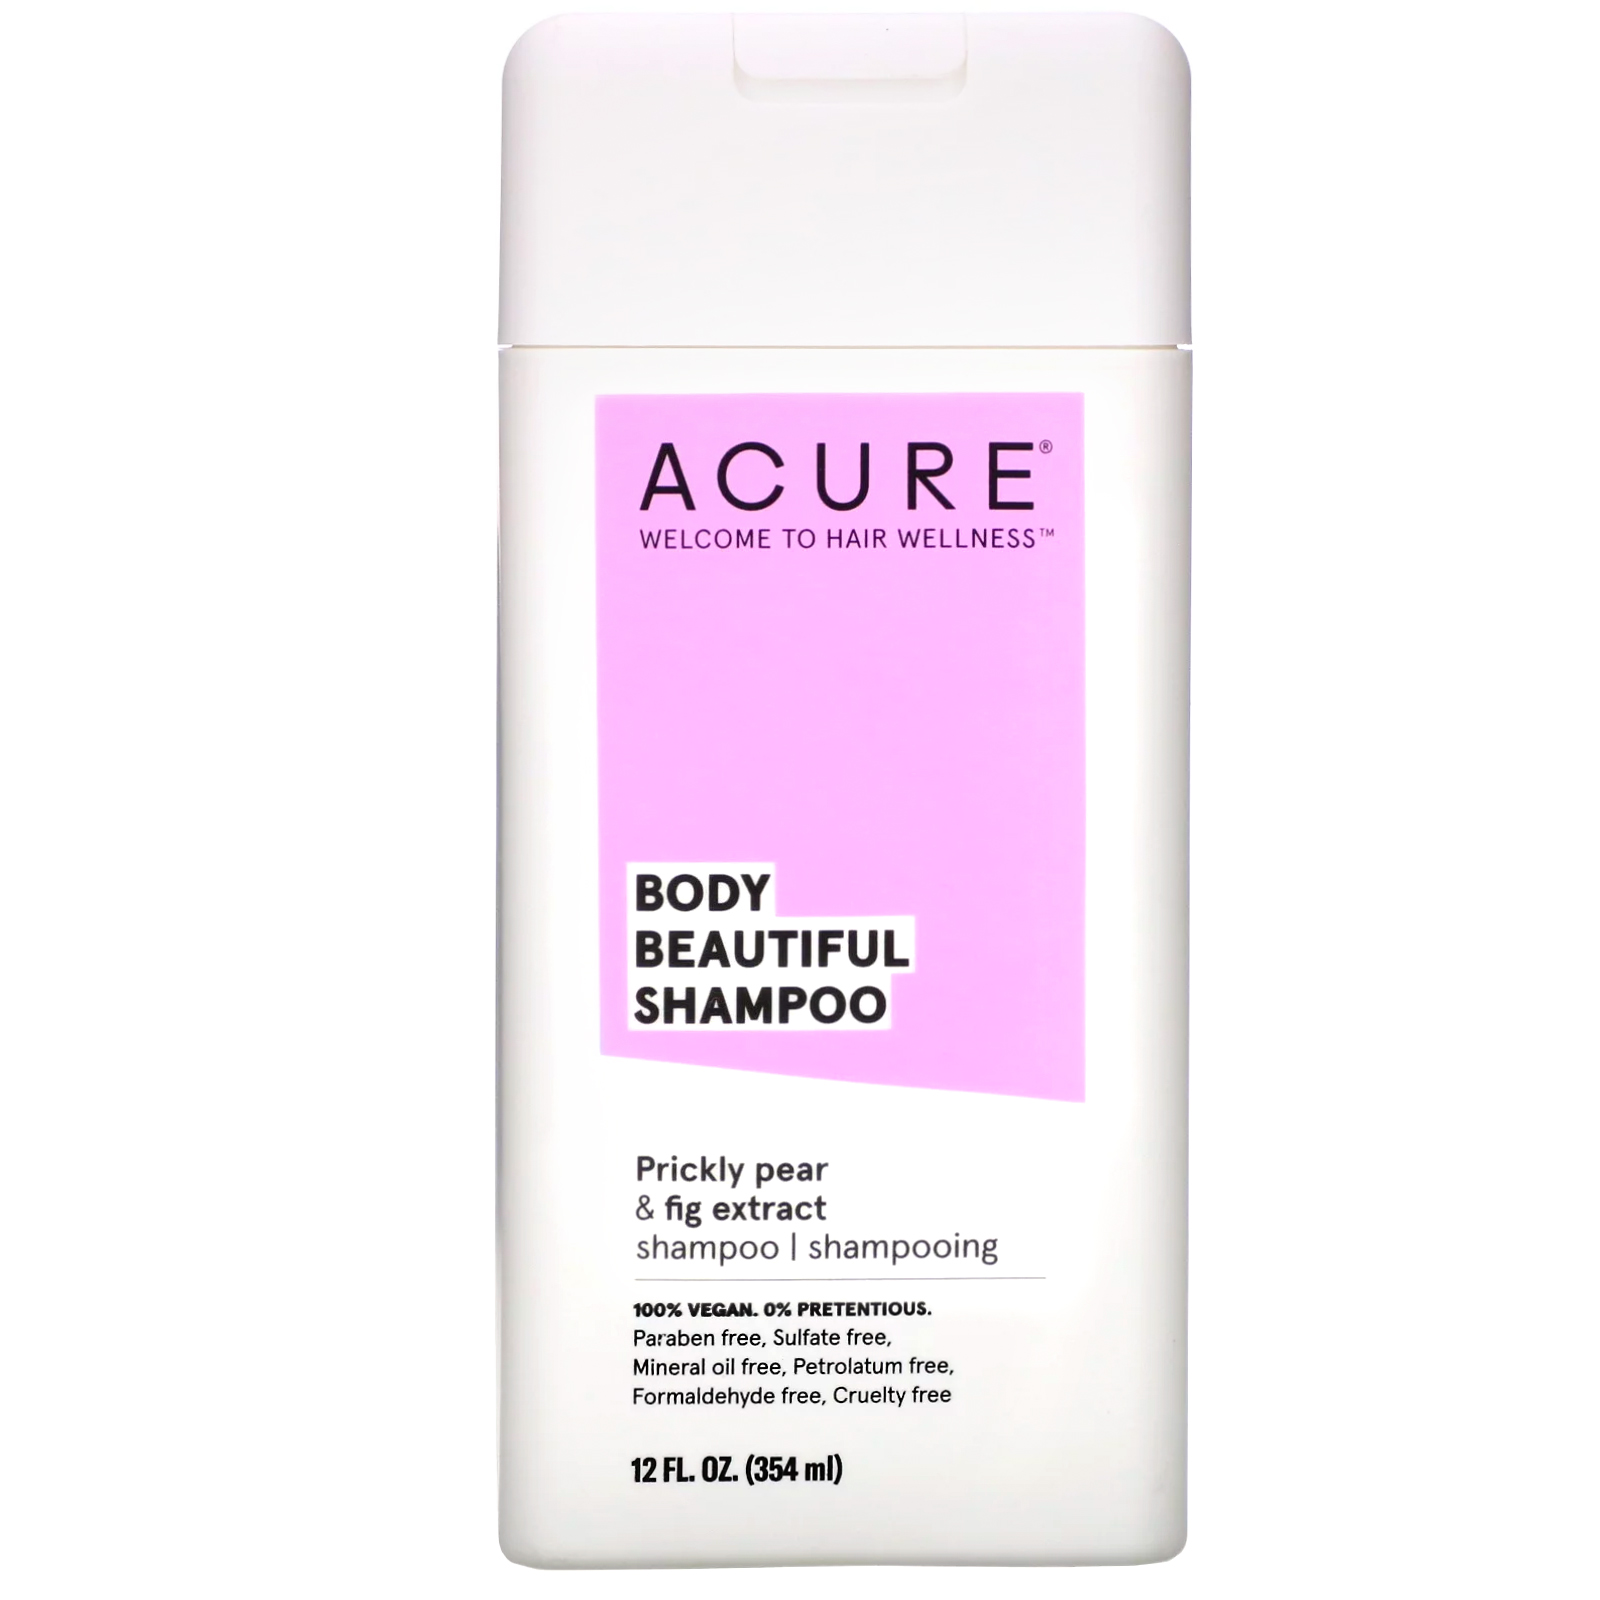 Body Beautiful Shampoo, Prickly Pear & Fig Extract, 12 Fl